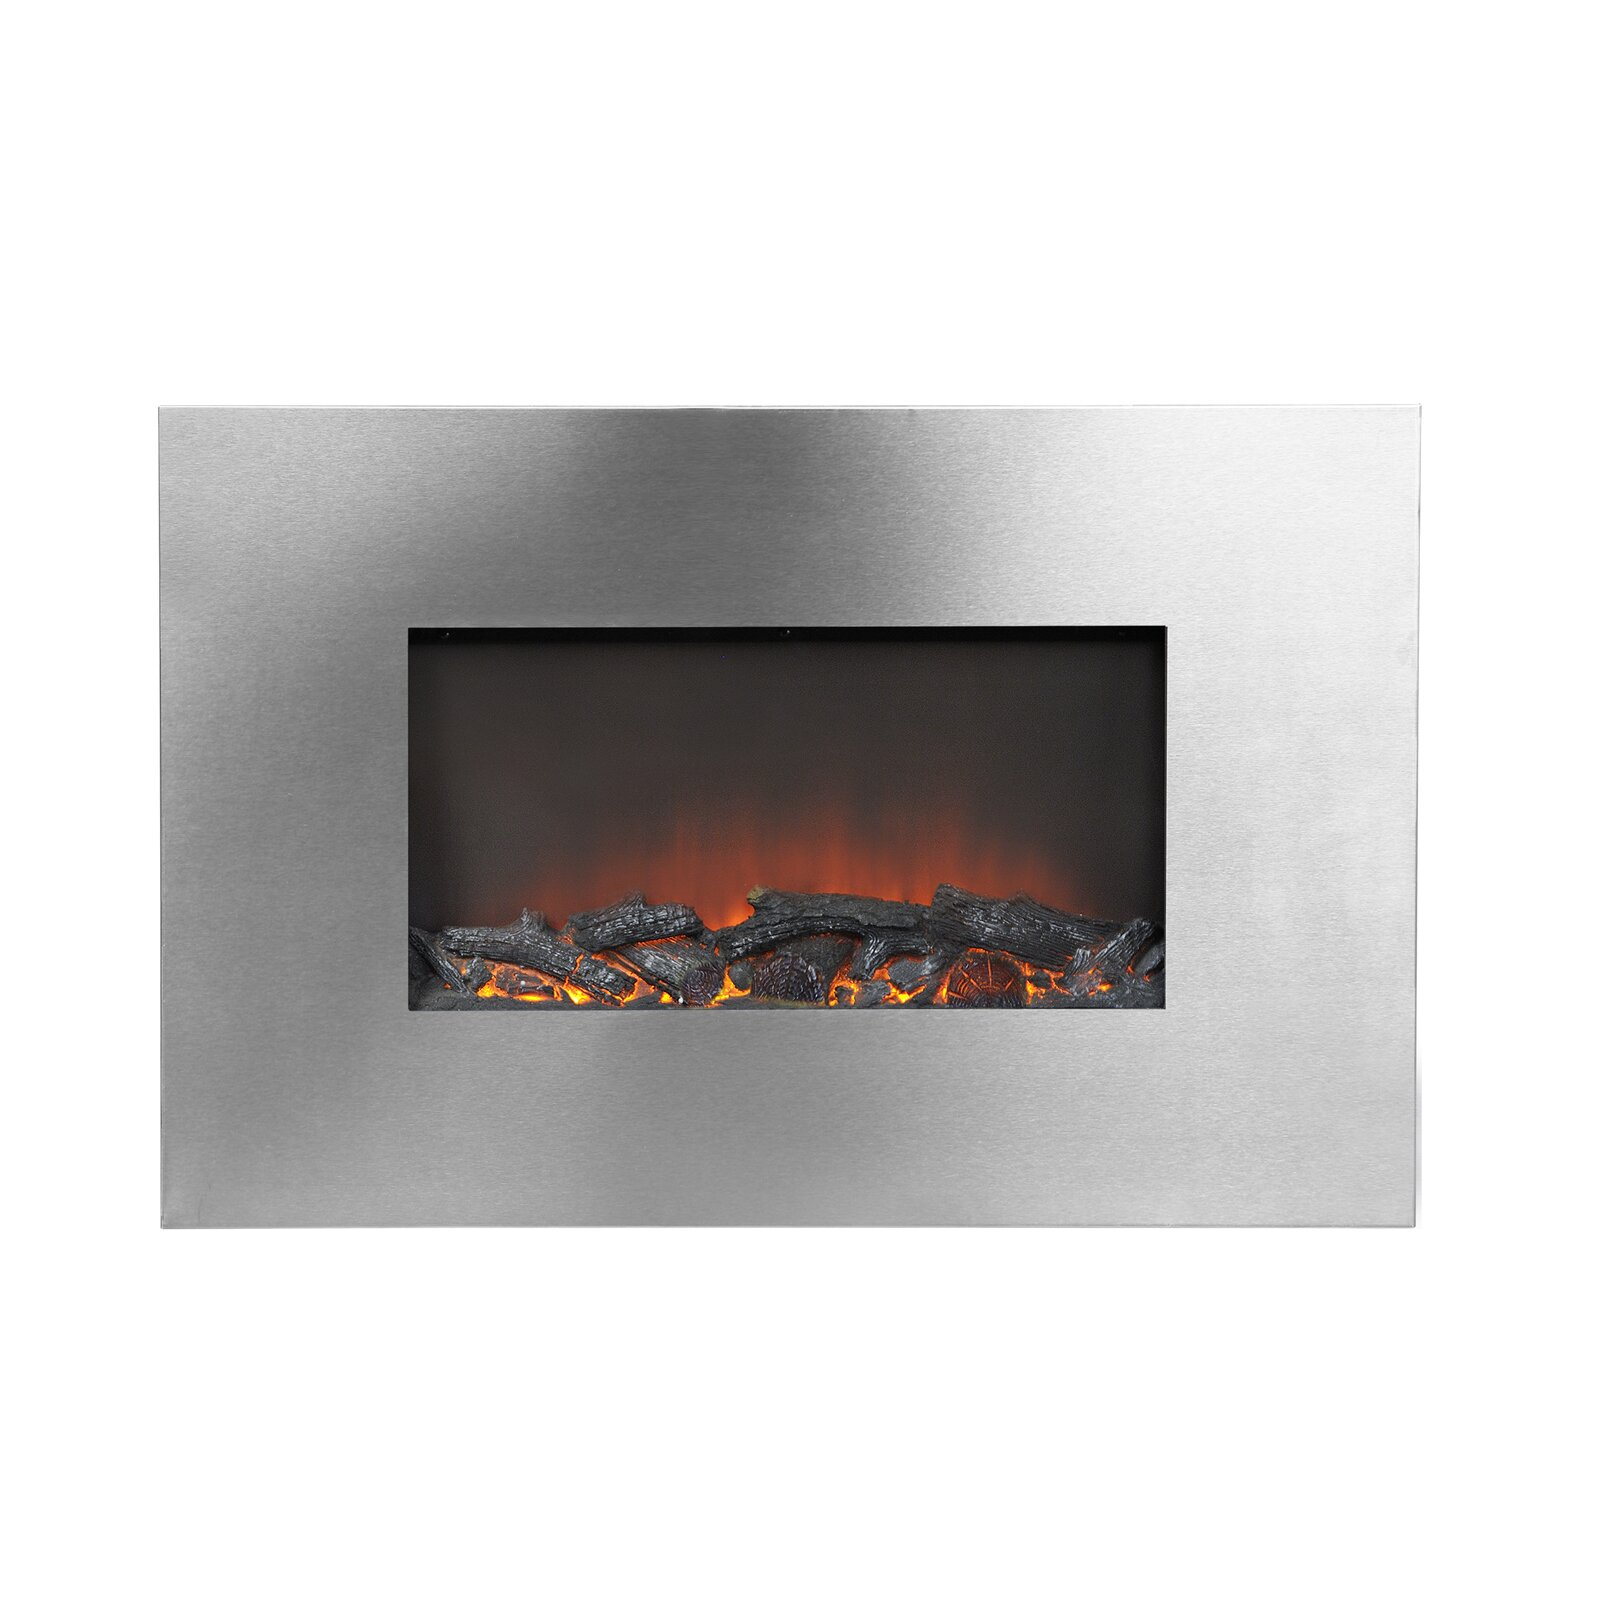 Homestar flamelux wall mount electric fireplace reviews for 24 wall mount electric fireplace